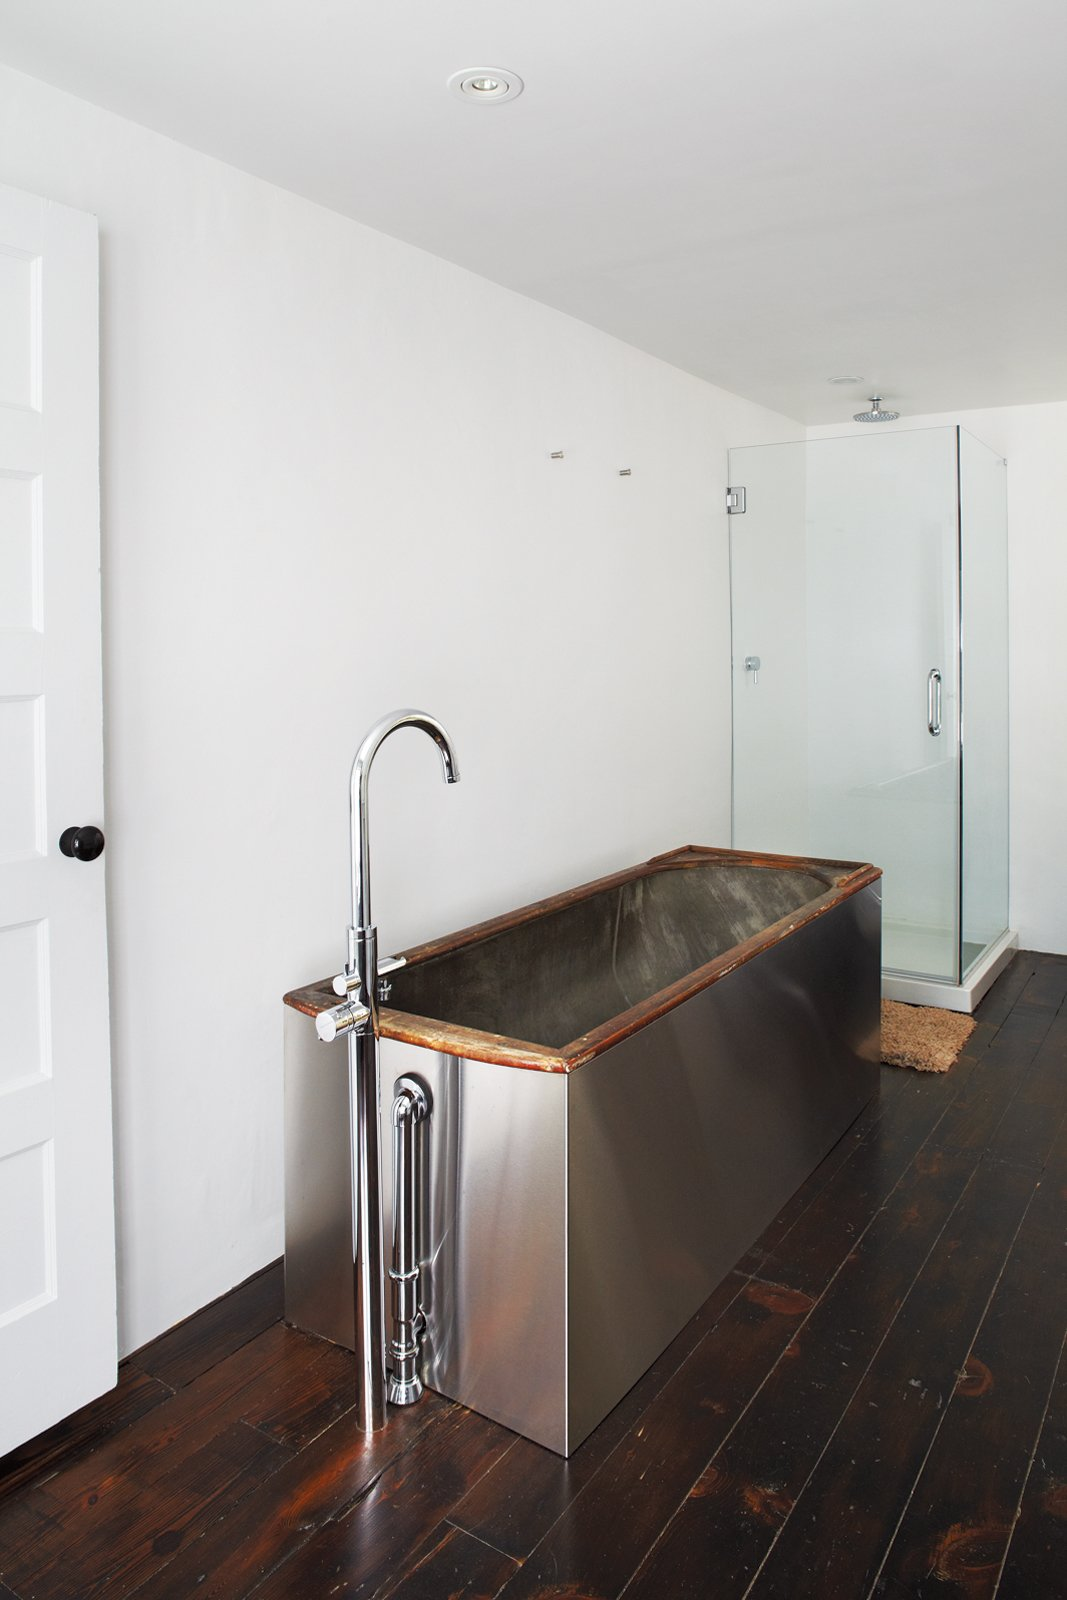 A salvaged 19th-century soaking tub wrapped   in stainless steel is topped by Hudson Reed faucets. Hope Floats - Photo 4 of 12